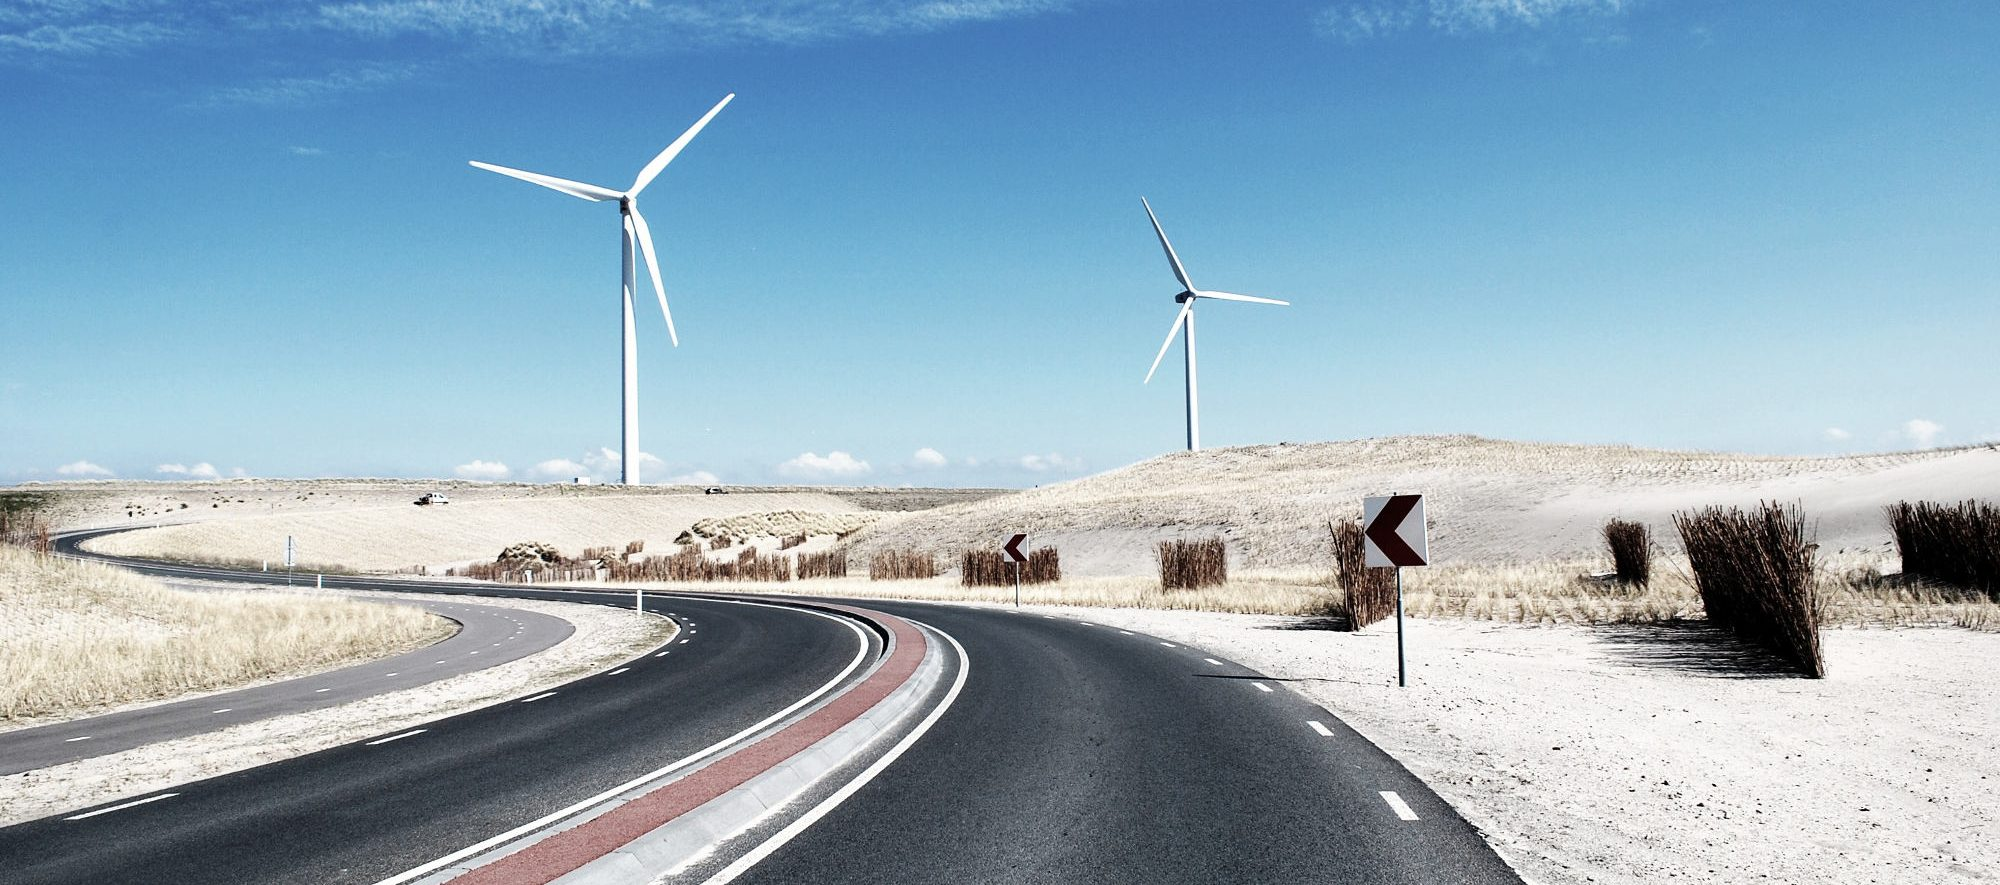 cropped-Capital-projects-and-contracts-header-wind-turbine-road-web.jpg